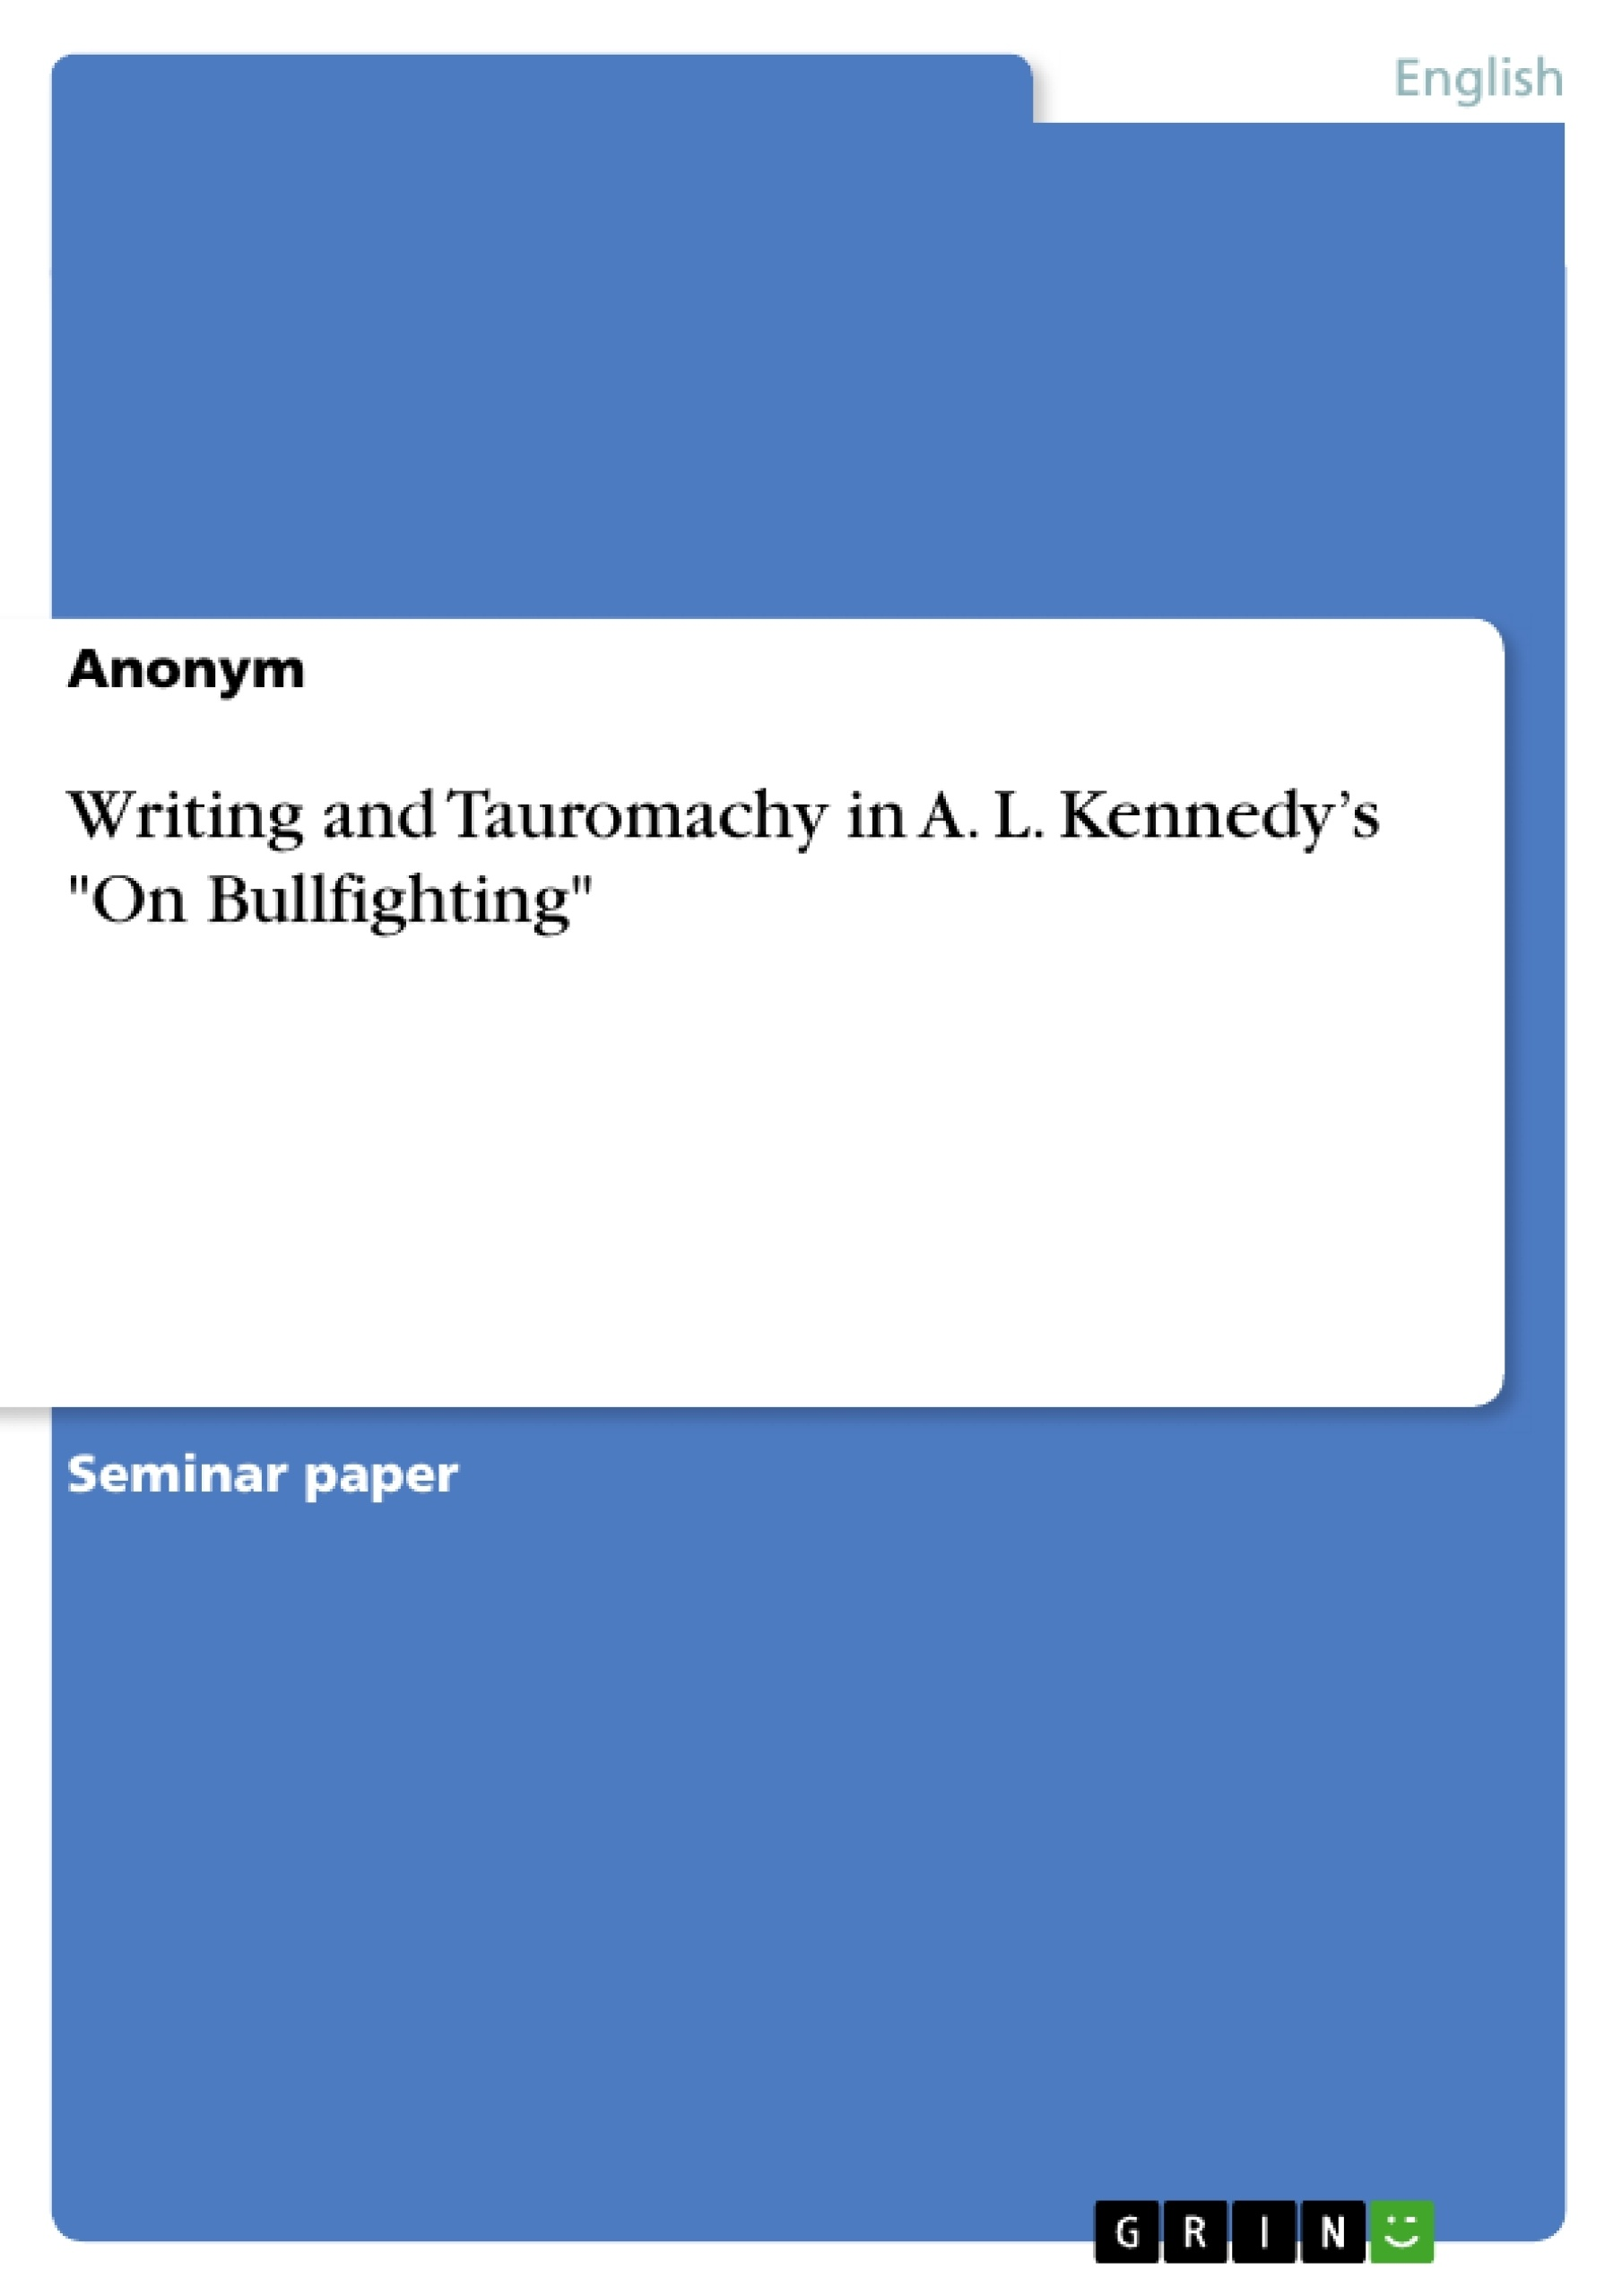 """Title: Writing and Tauromachy in A. L. Kennedy's """"On Bullfighting"""""""